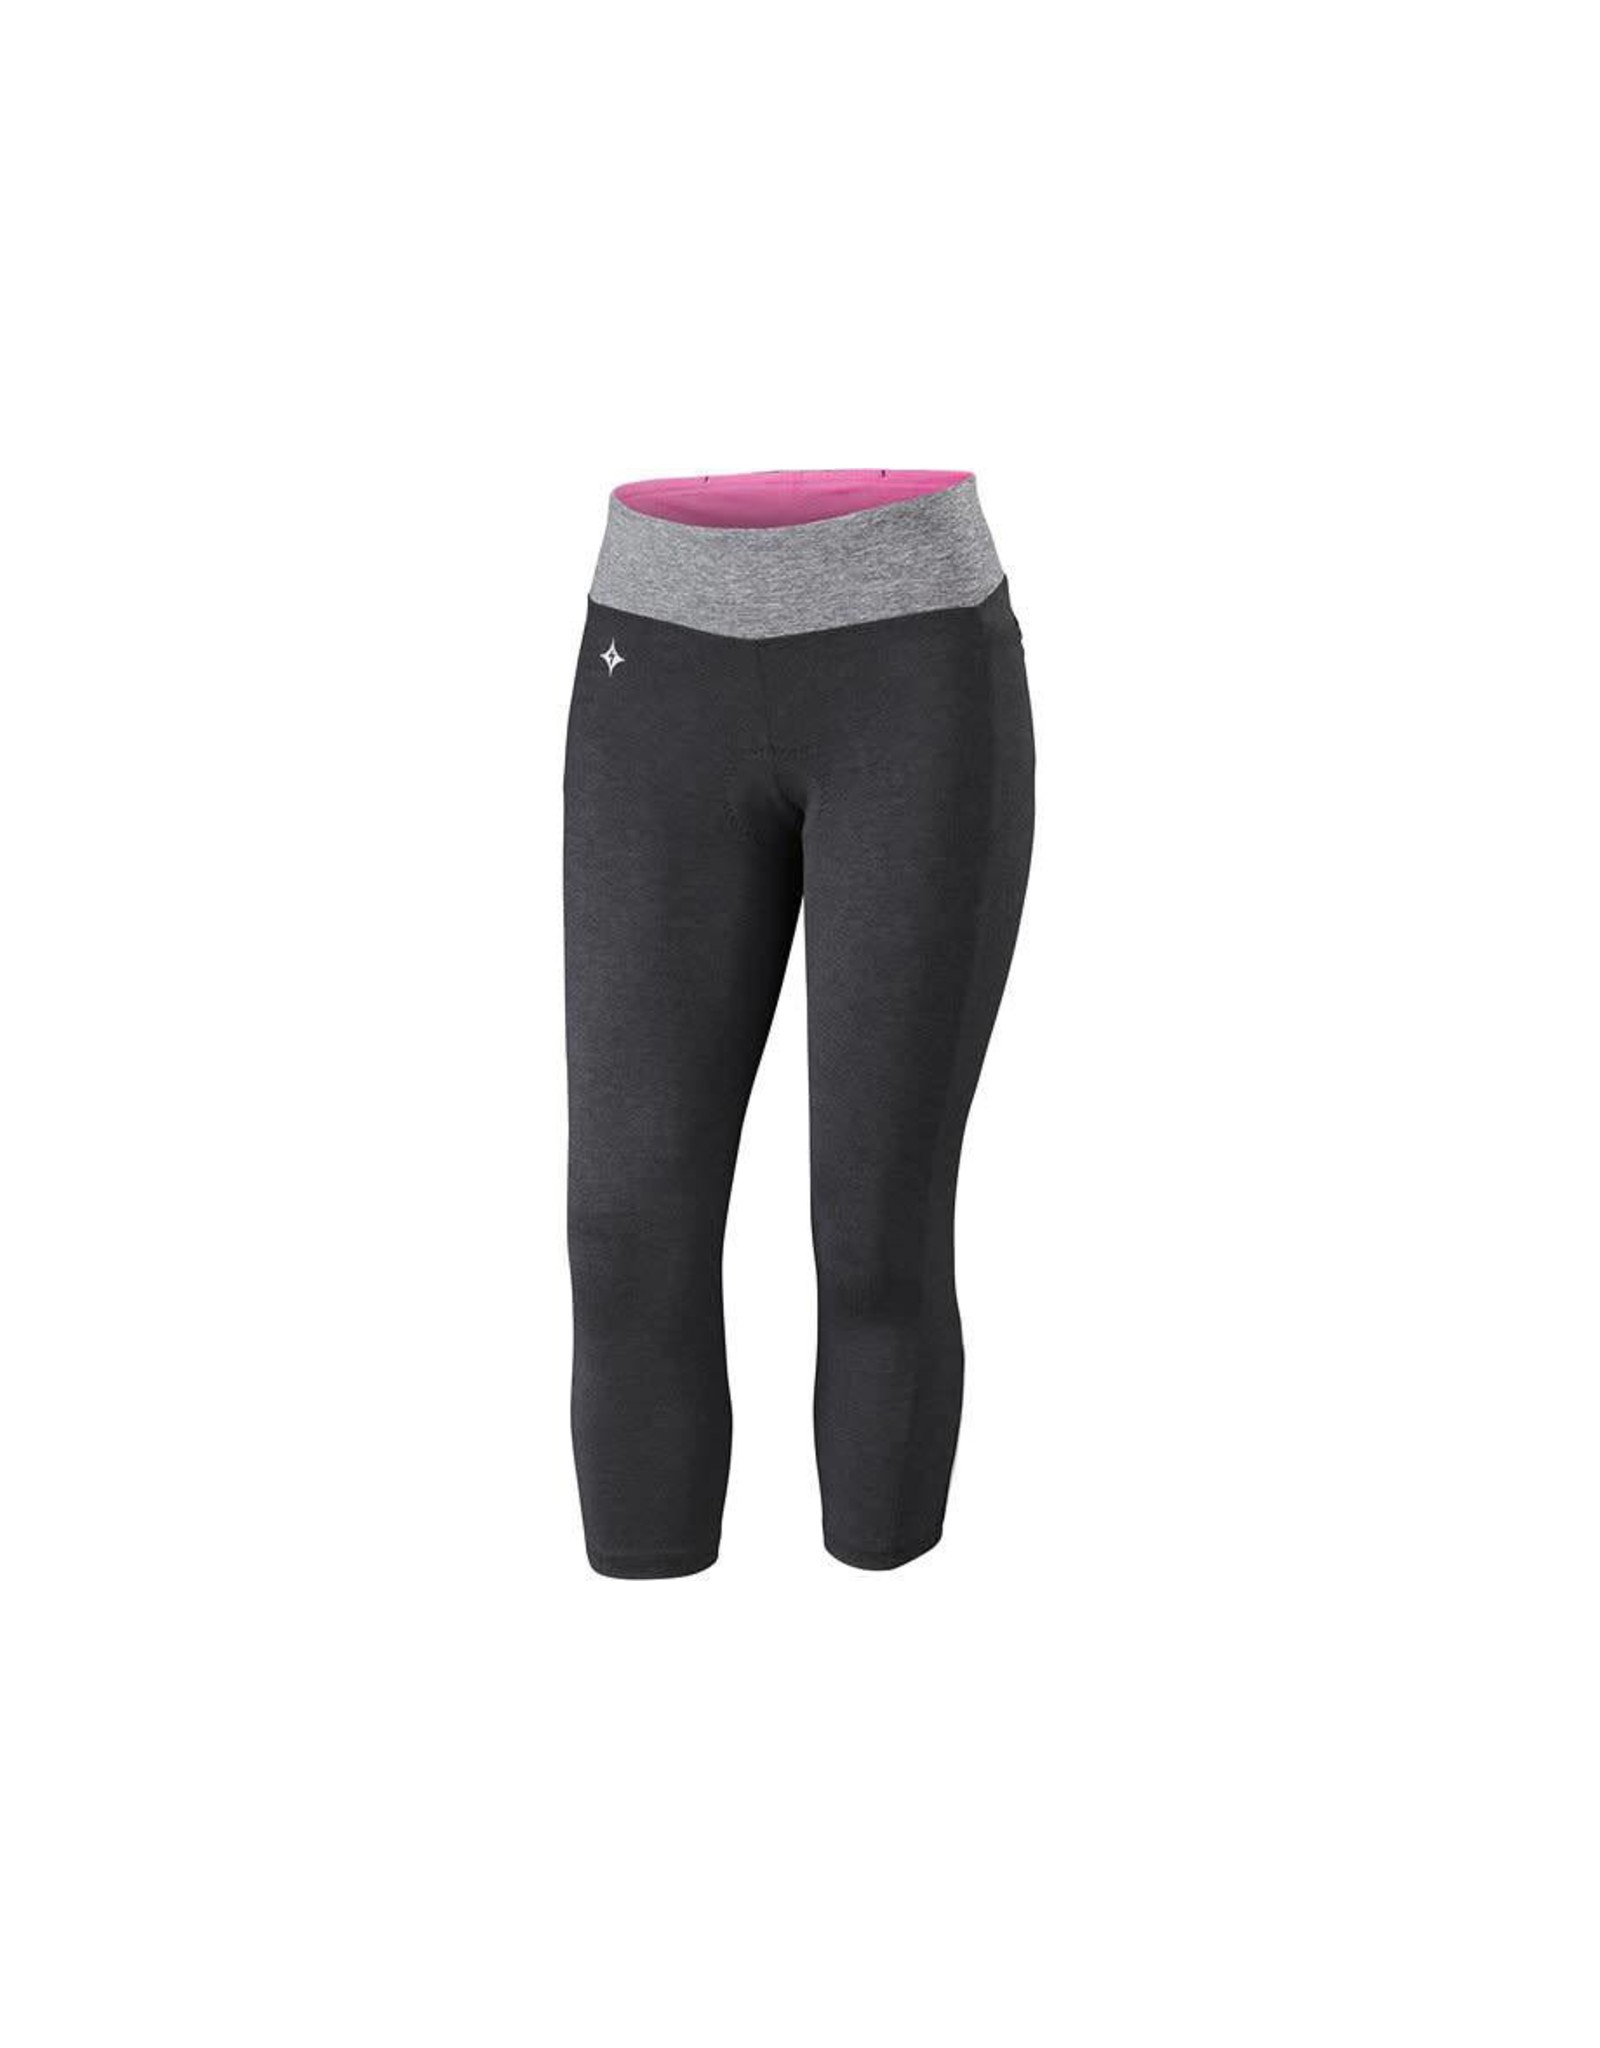 SPECIALIZED Specialized Women's Shasta 3/4 Tight - Black Heather - S